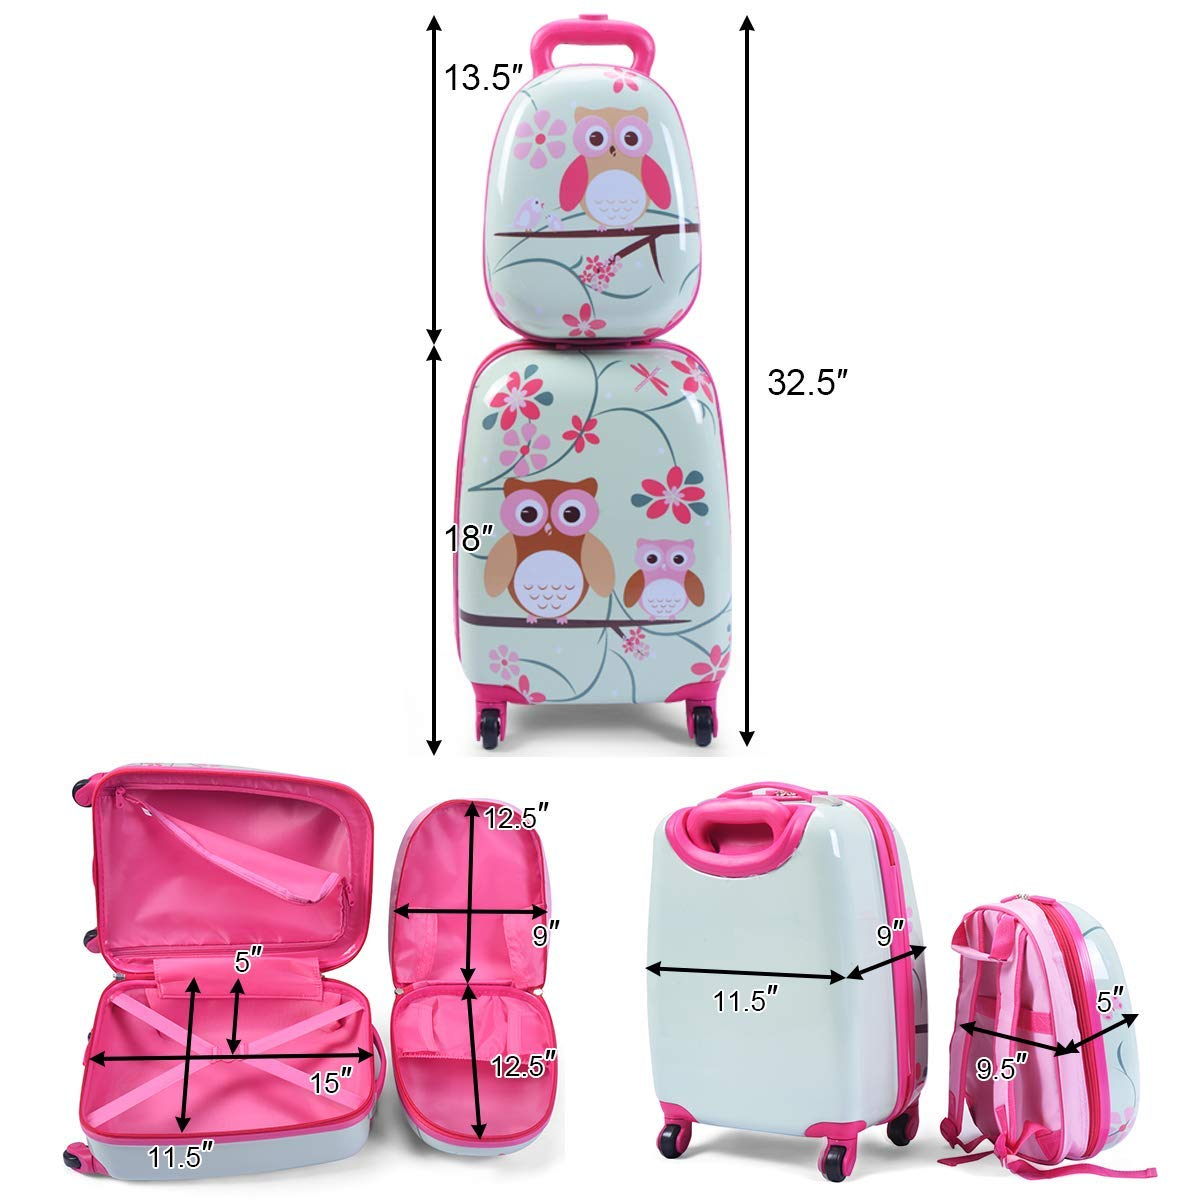 Children Rolling Travel Suitcase Cartoon Car Kids Carry On Set Universal Wheels 18 in Travel Luggage Case for Boys Car